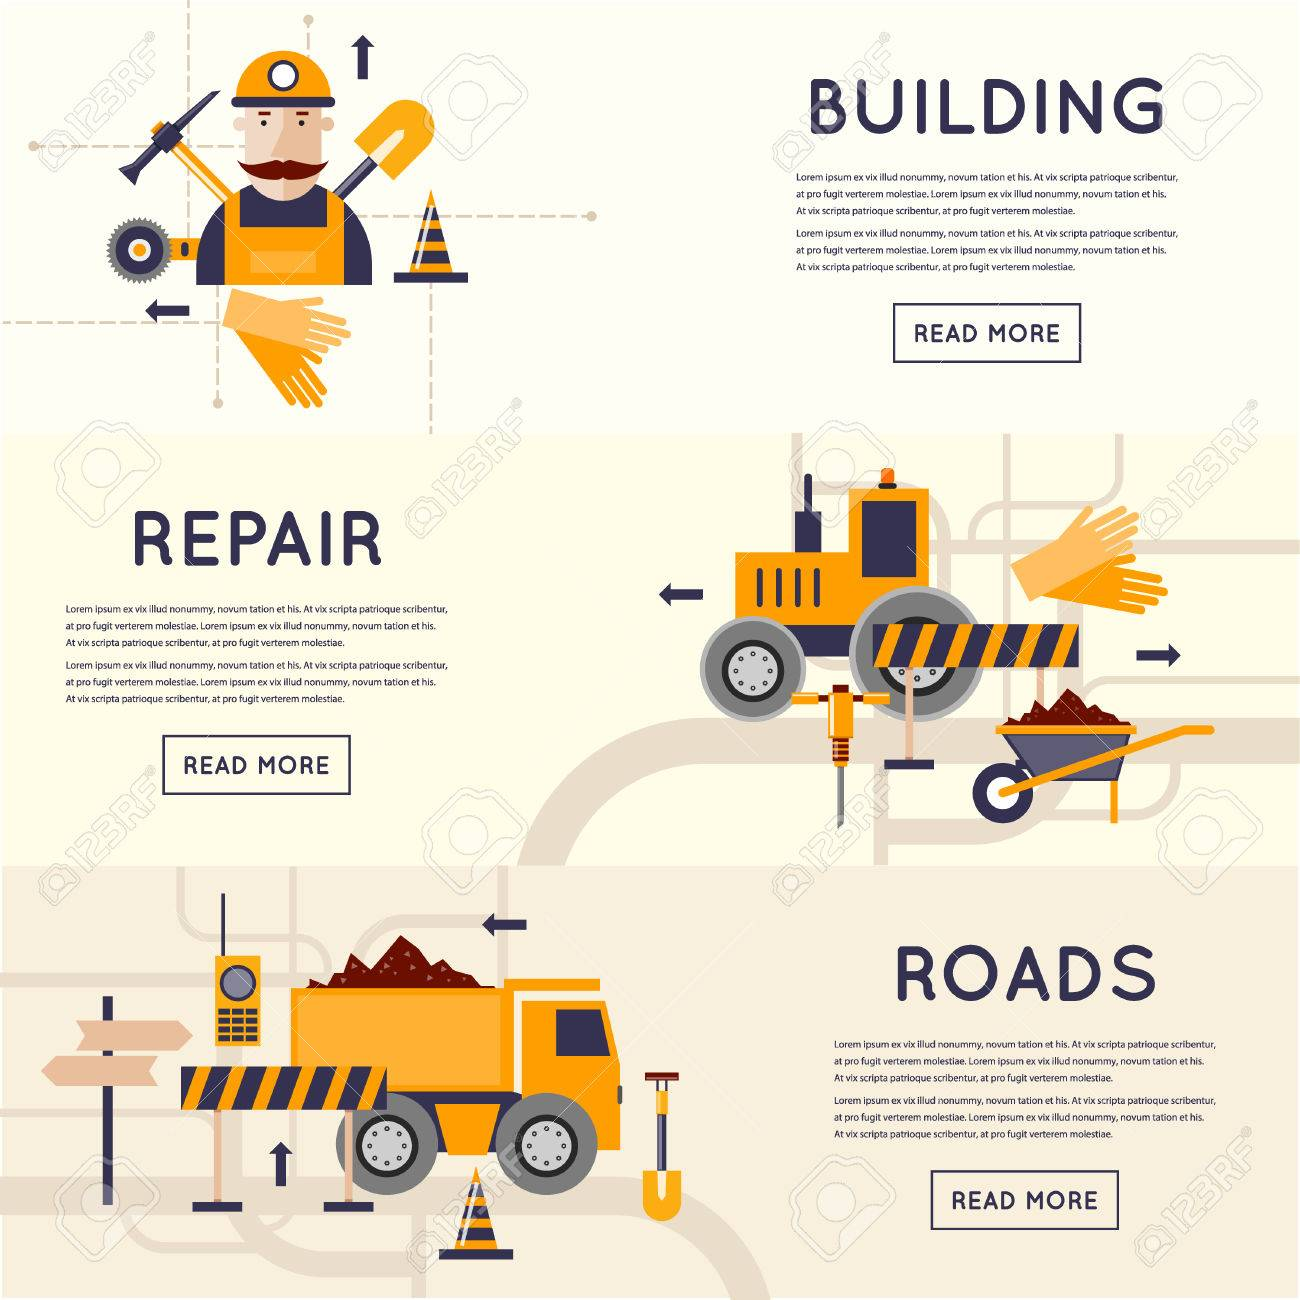 Construction Equipment Banners Guest Banners